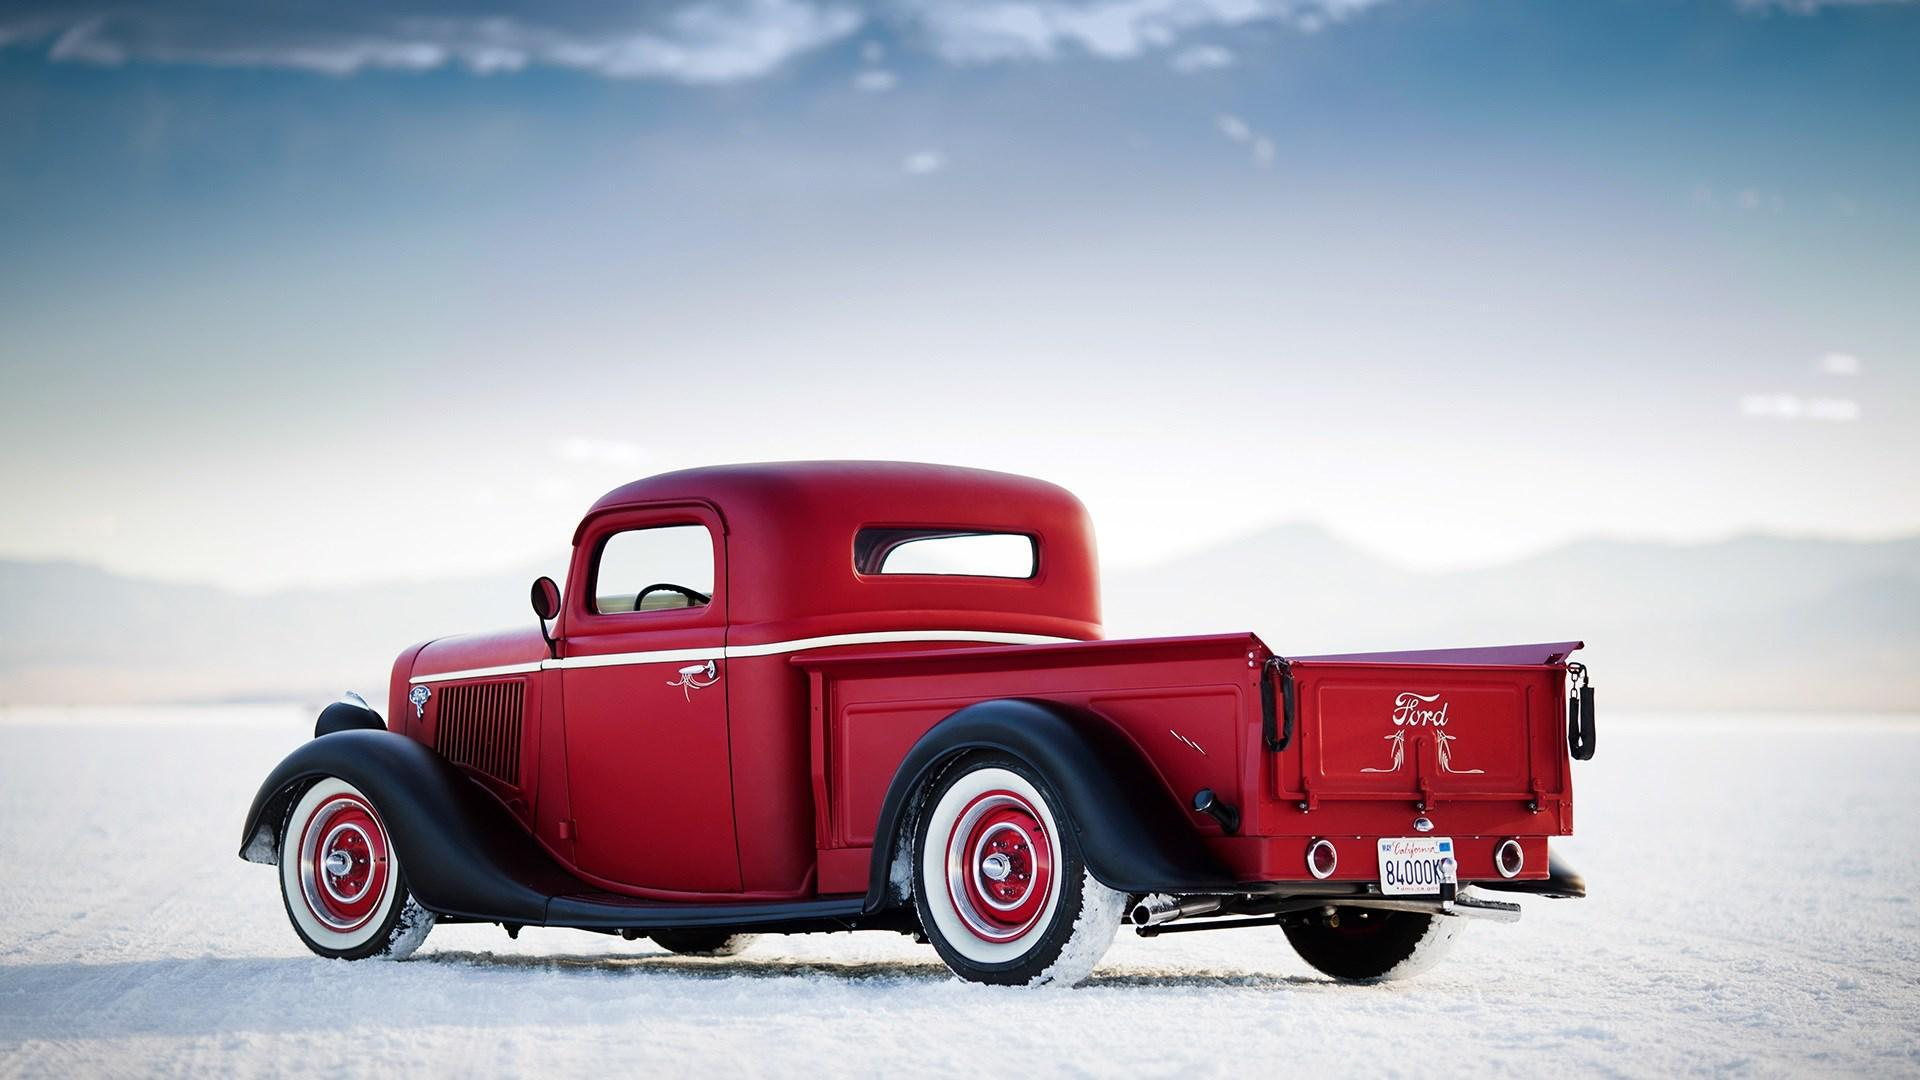 Vintage Cars Wallpapers | Best Wallpapers